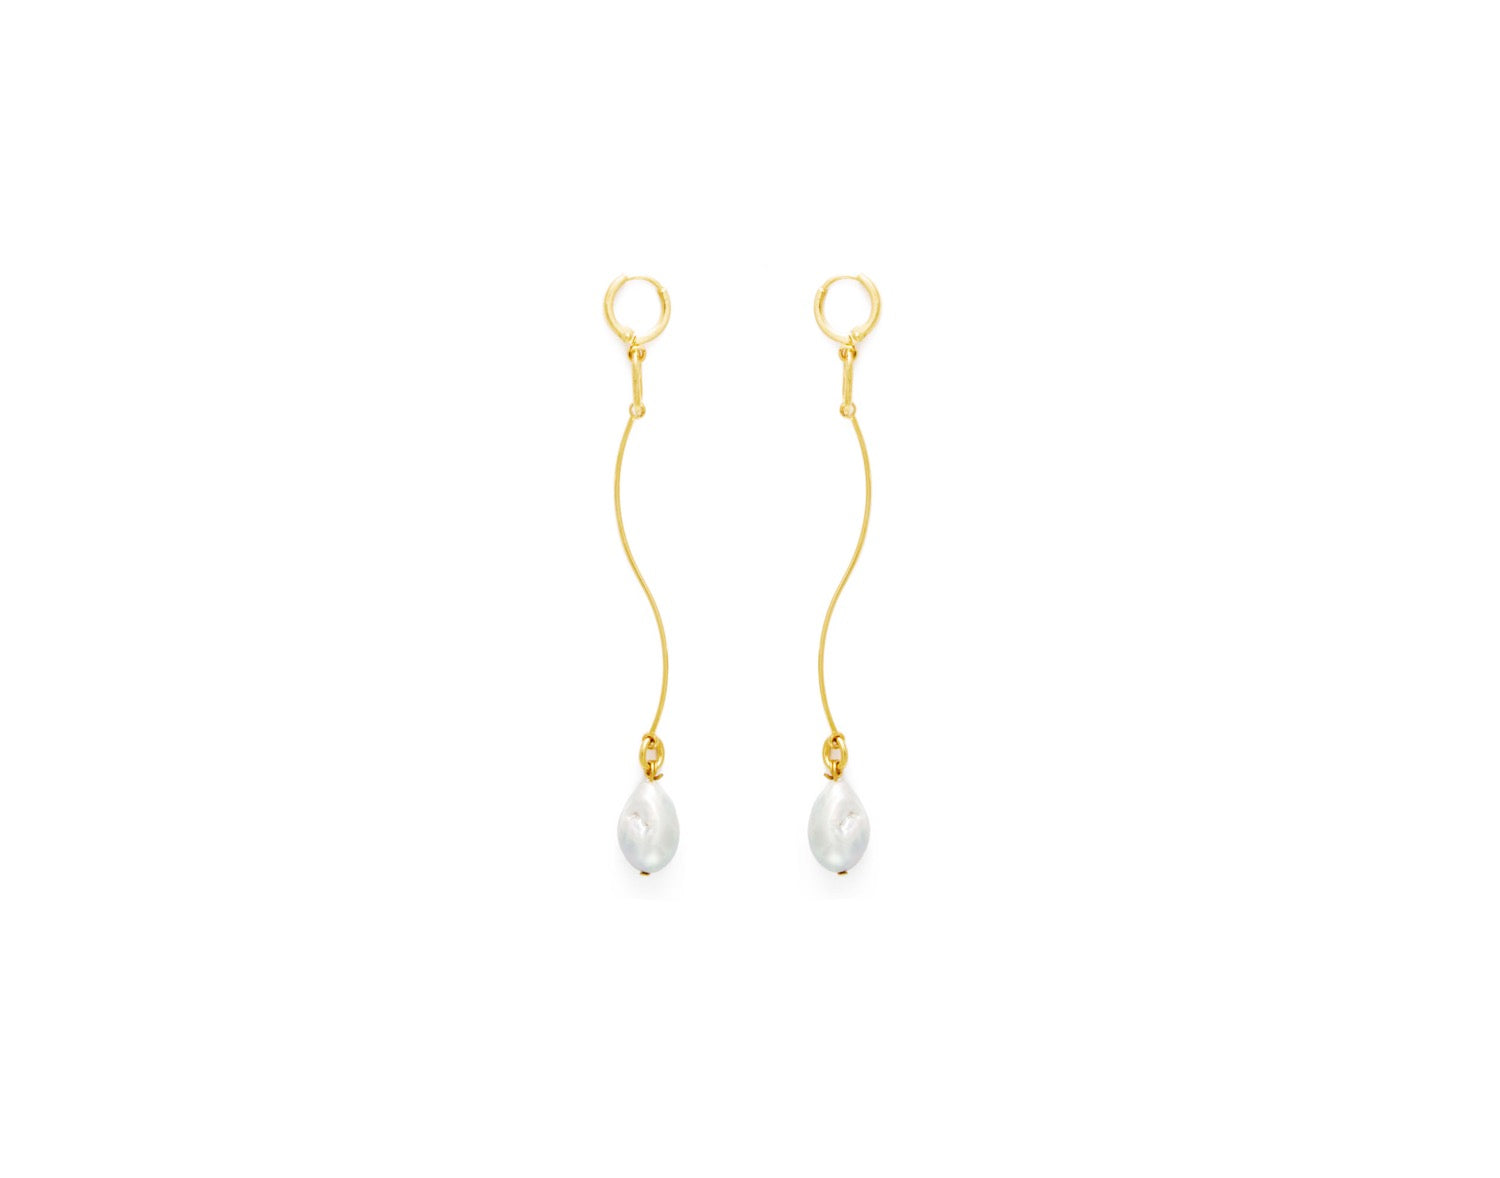 Stream Earrings in Gold